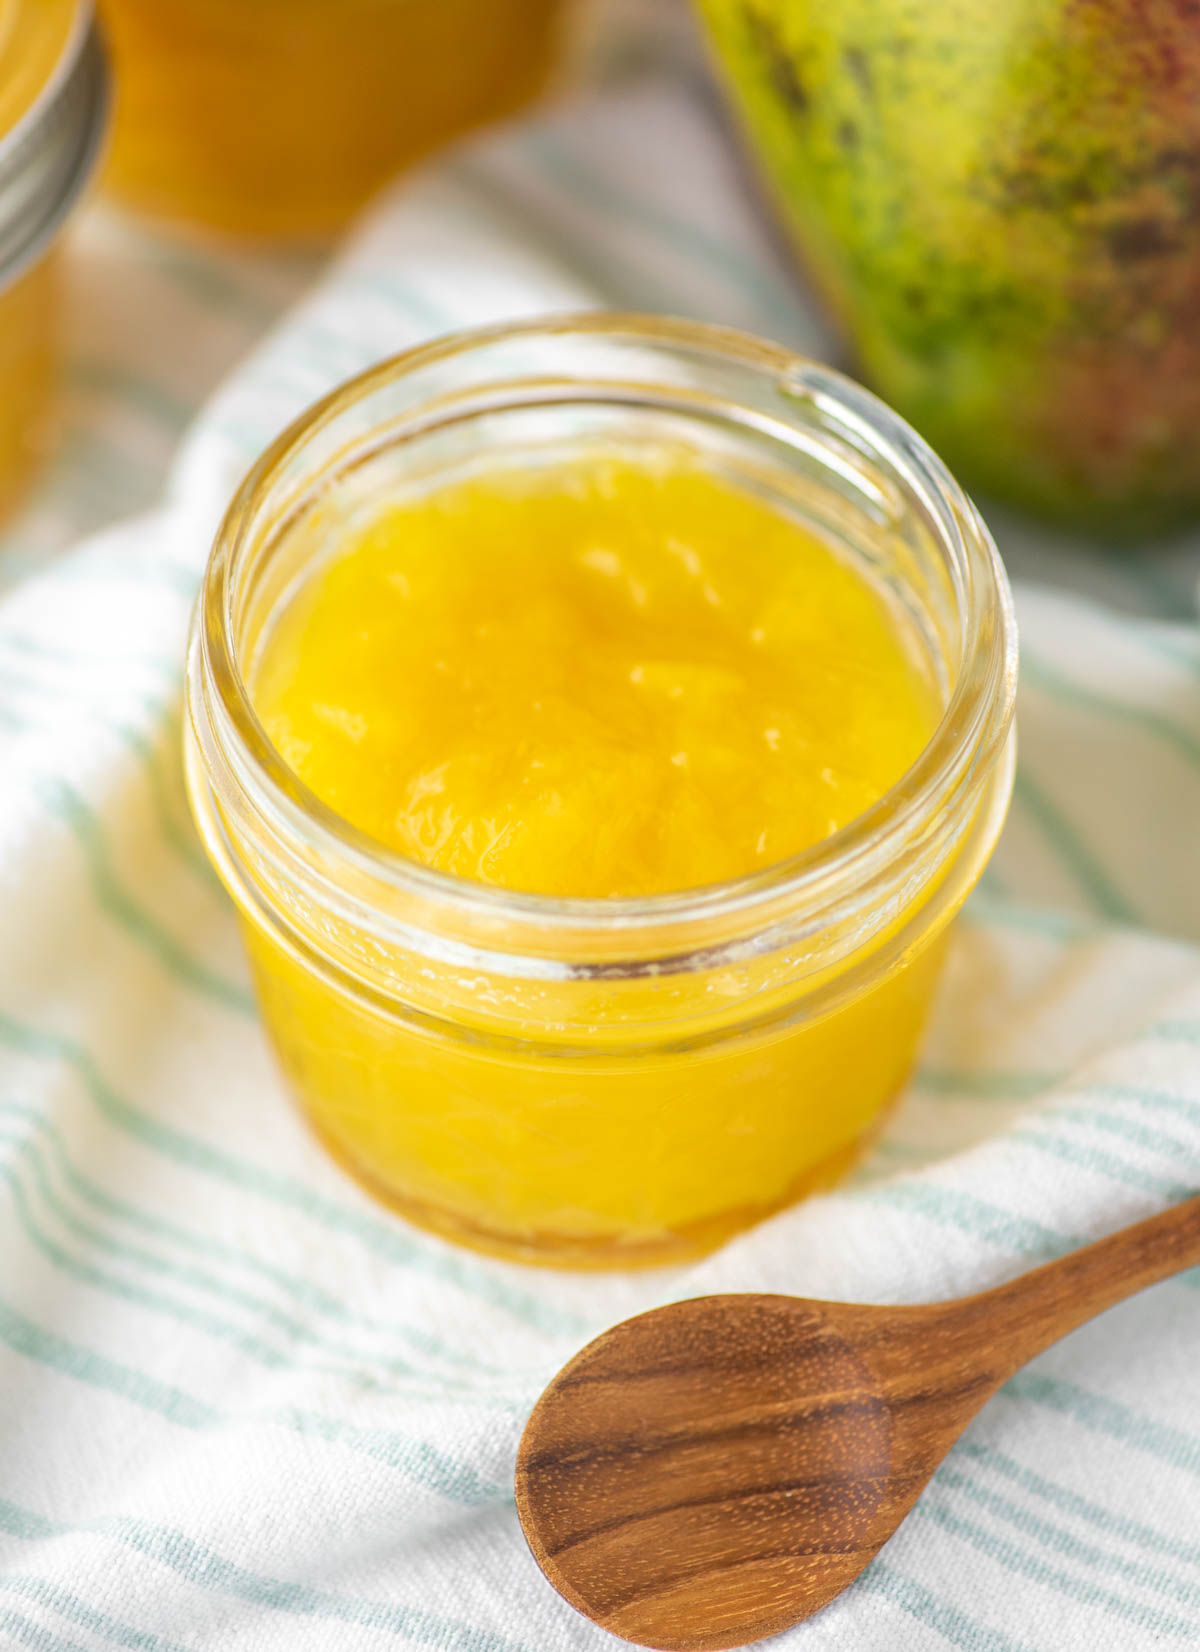 mango jam in glass jar on dish towel with wooden spoon